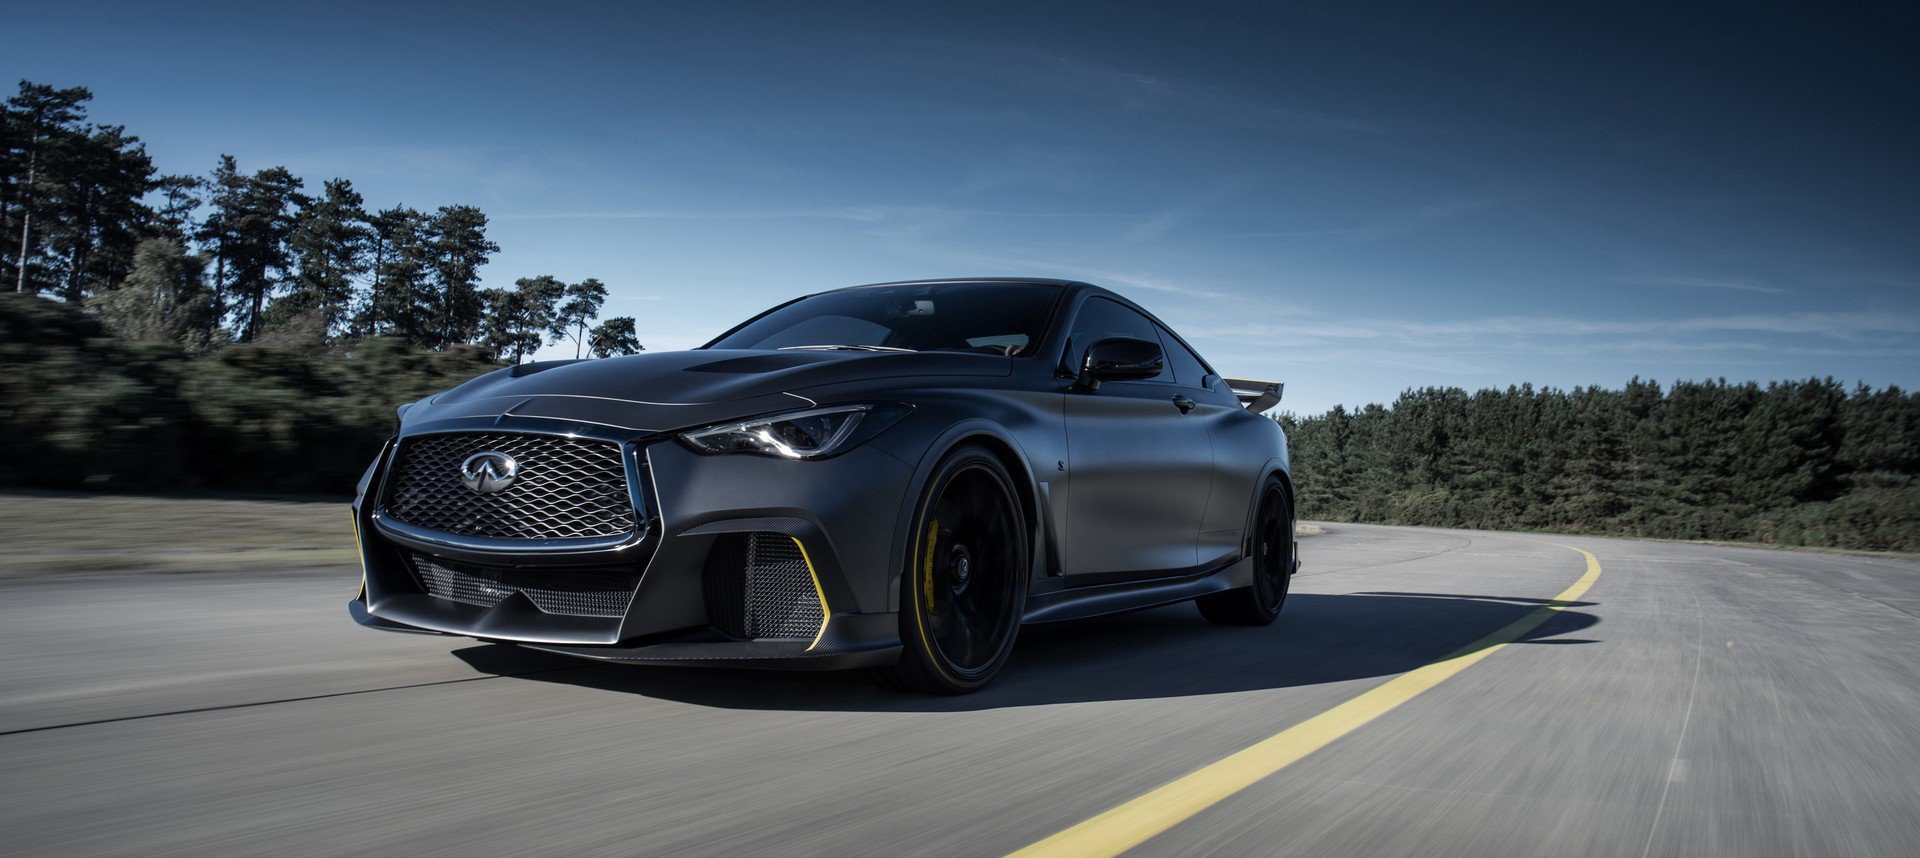 Infiniti Project Black S Prototype (33)